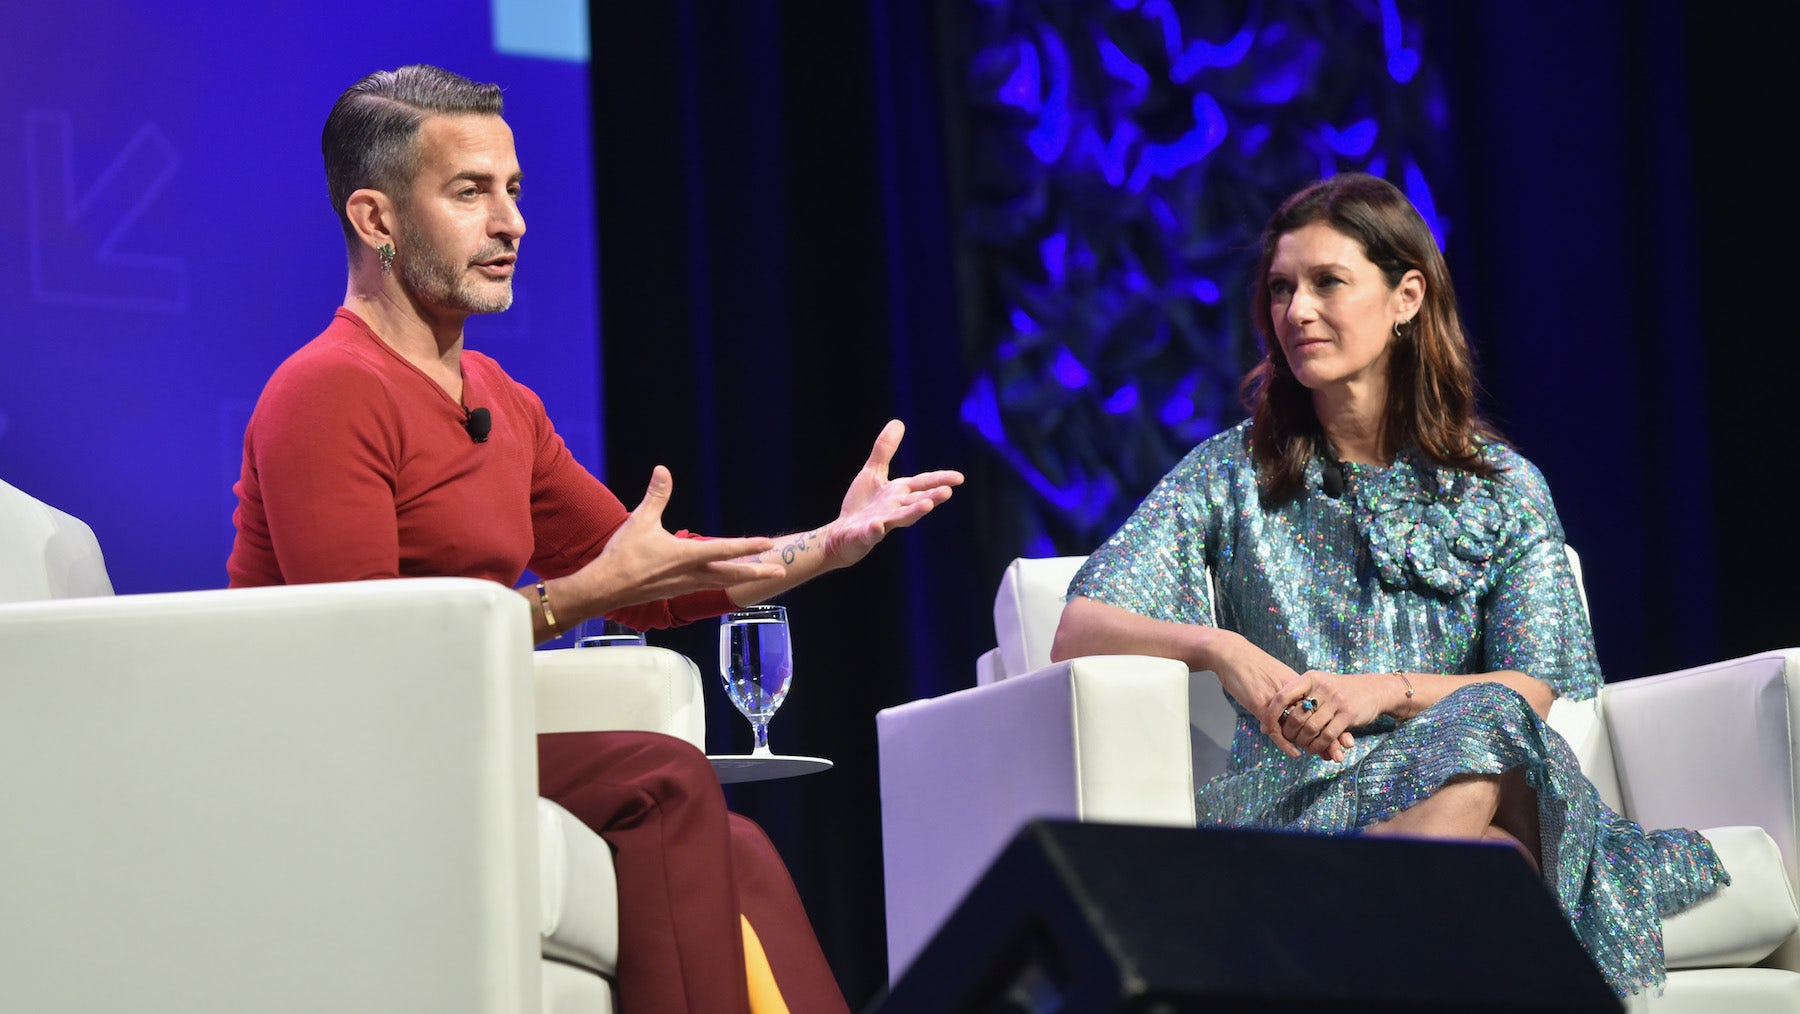 Marc Jacobs in conversation with Sally Singer at SXSW 2017 | Source: Getty Images